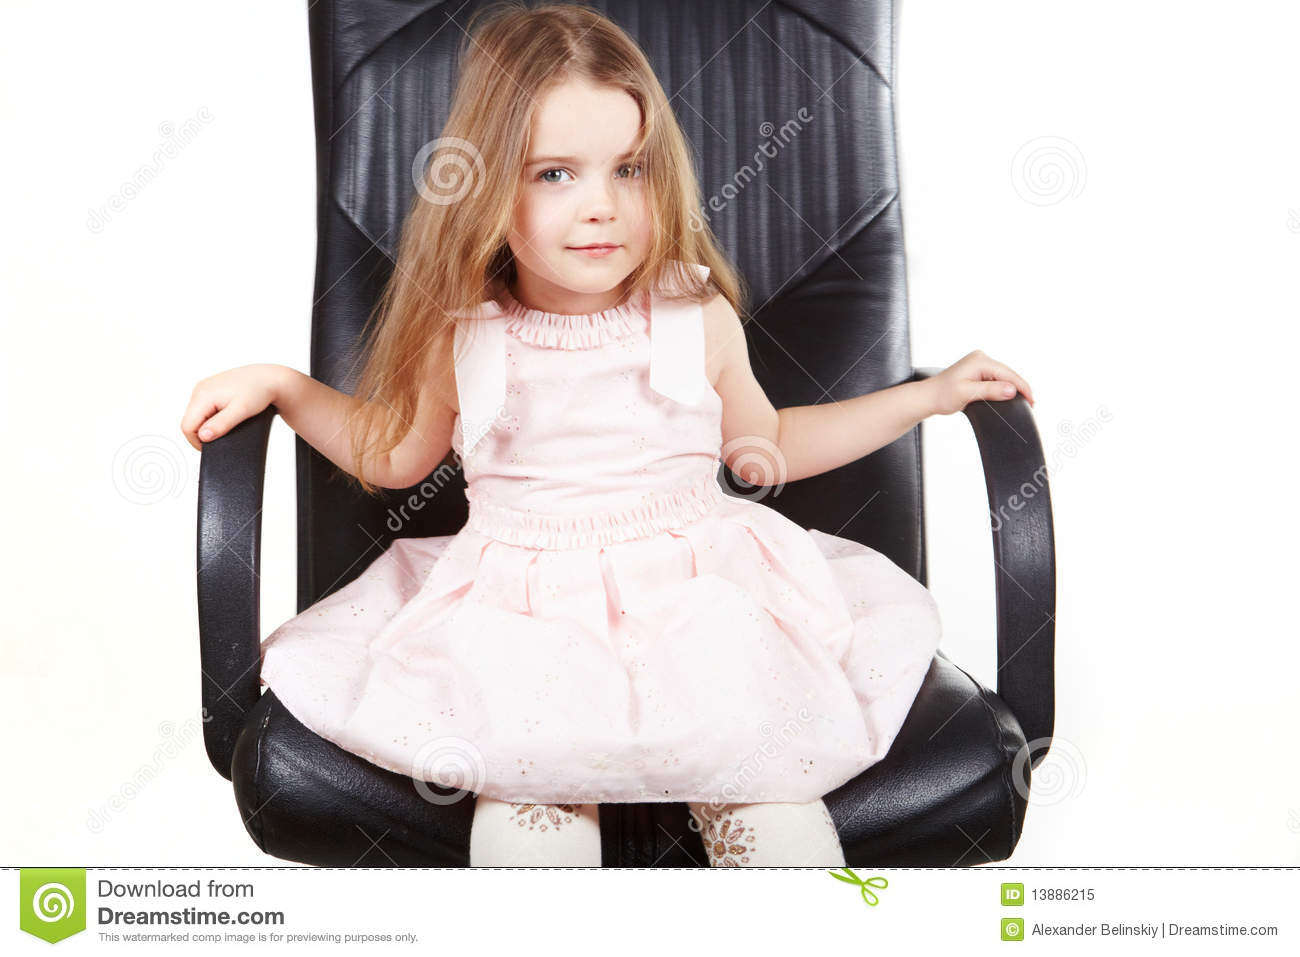 Girls Office Chair Little Girl On Office Chair Royalty Free Stock Photo